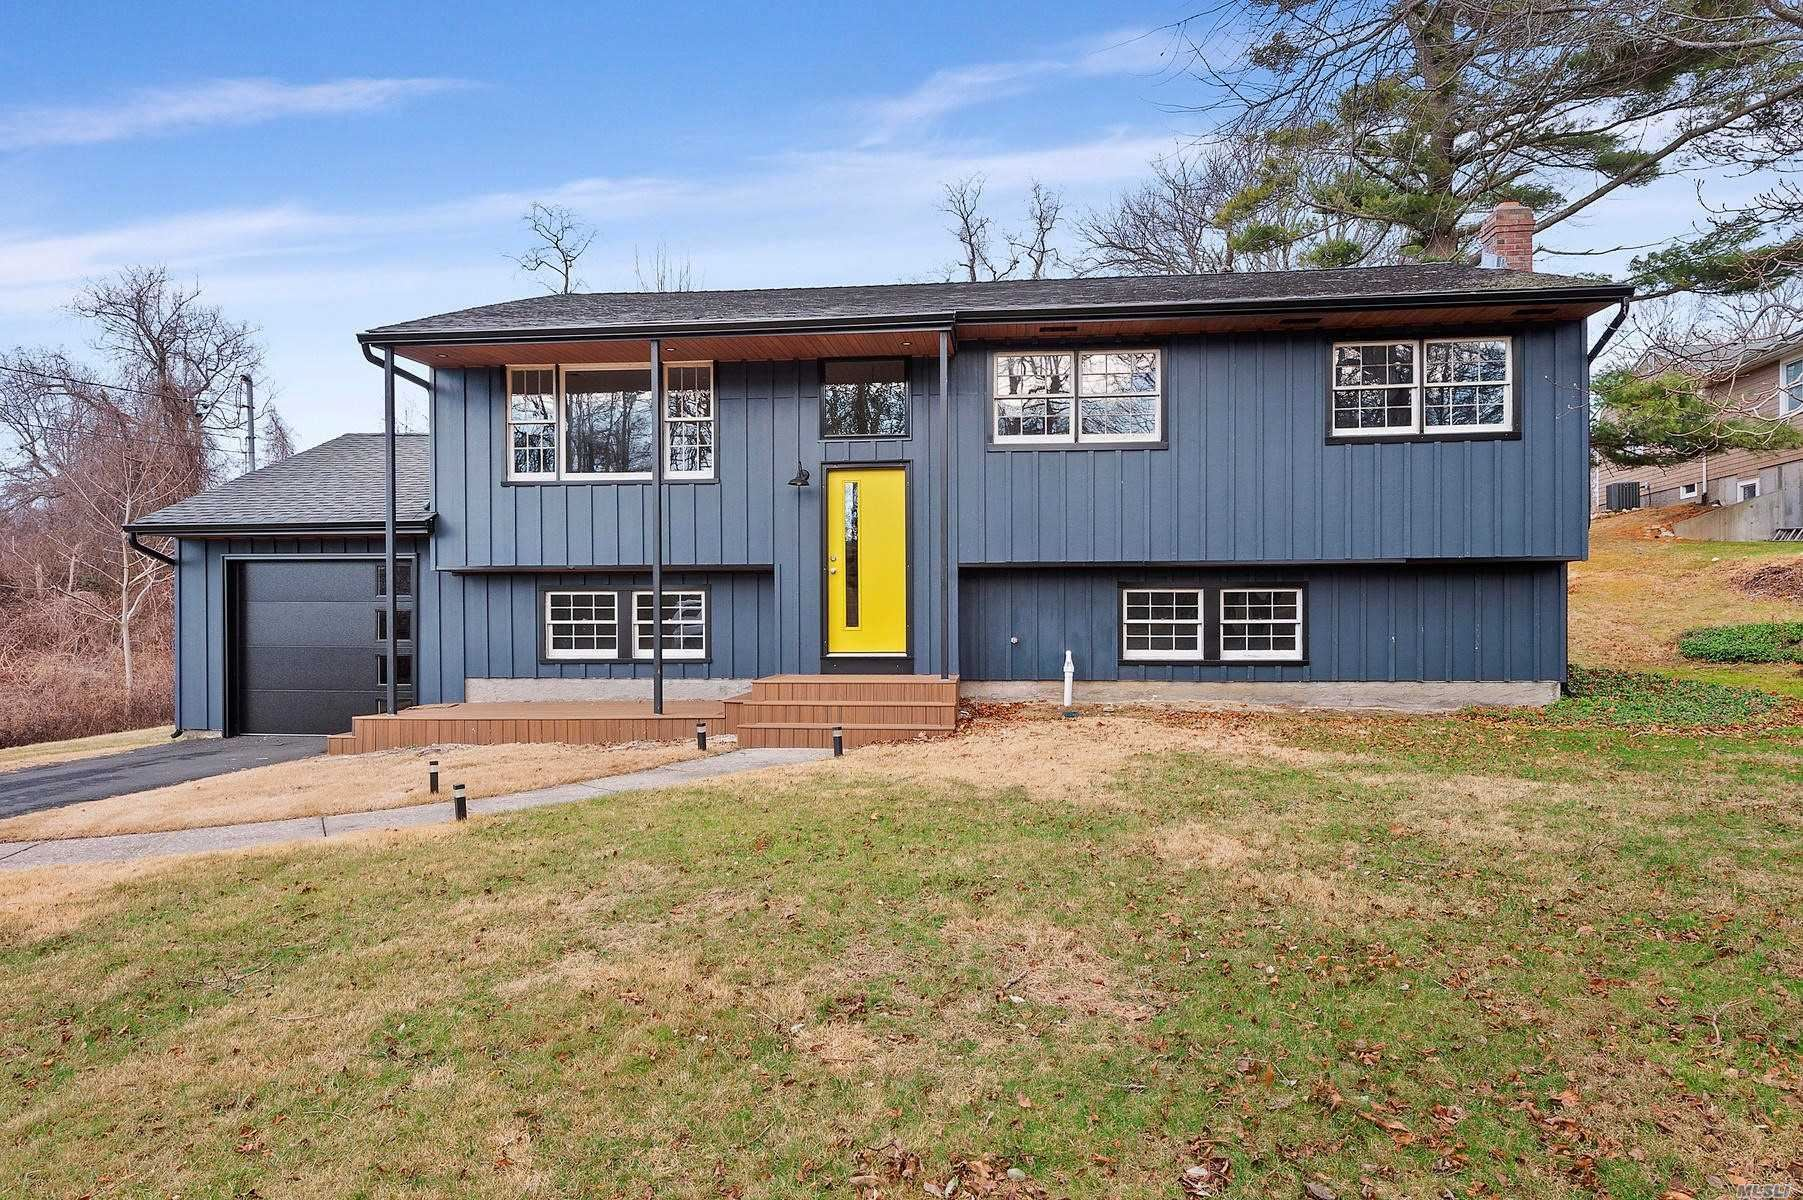 3 Wade Road, Shelter Island, NY 11964 - MLS#: 3228729